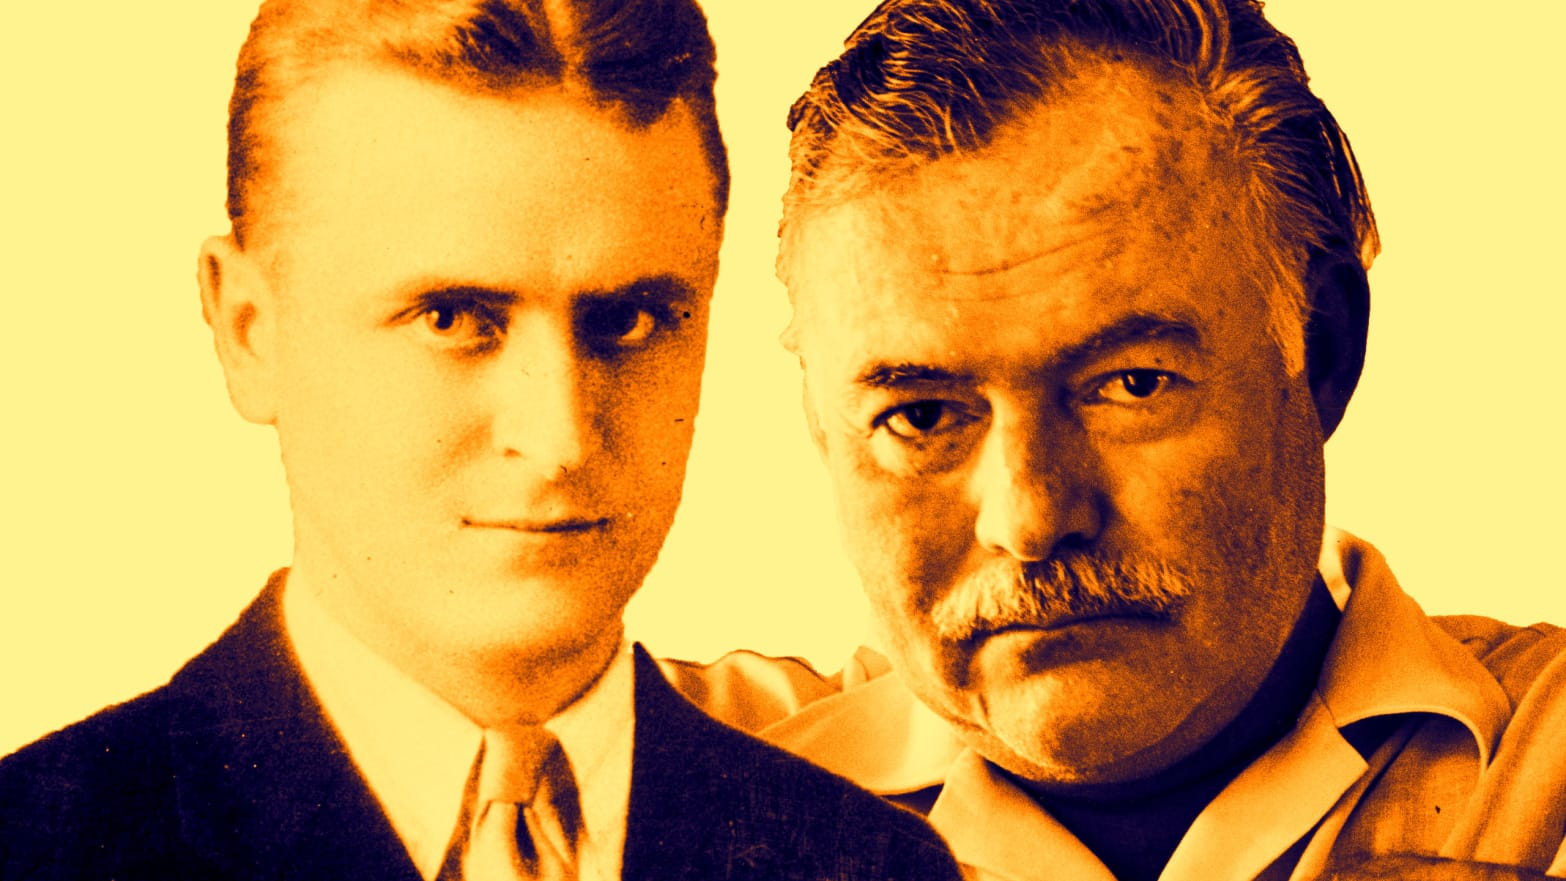 Reading Hemingway and Fitzgerald